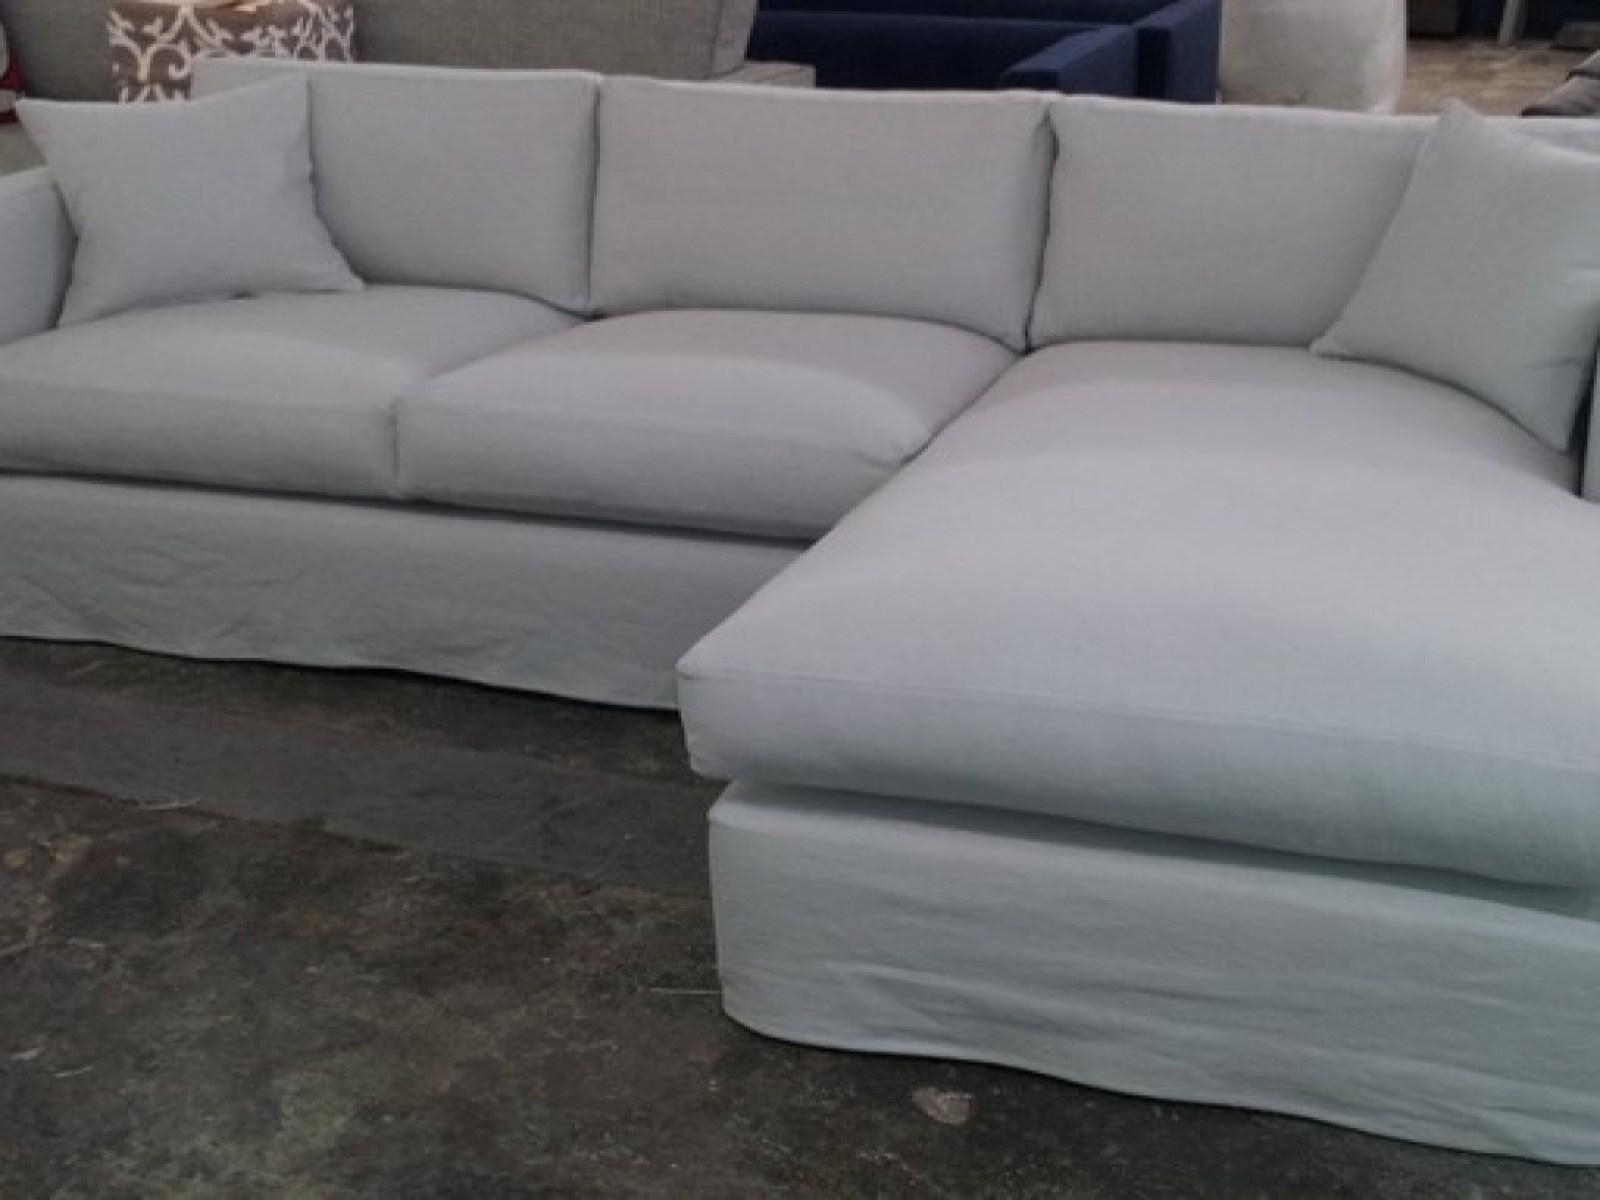 Sofas Center : Sectional Sofa Slipcovers Christianismecelestenet With Slipcovers For Sectional Sofas With Recliners (Image 19 of 20)